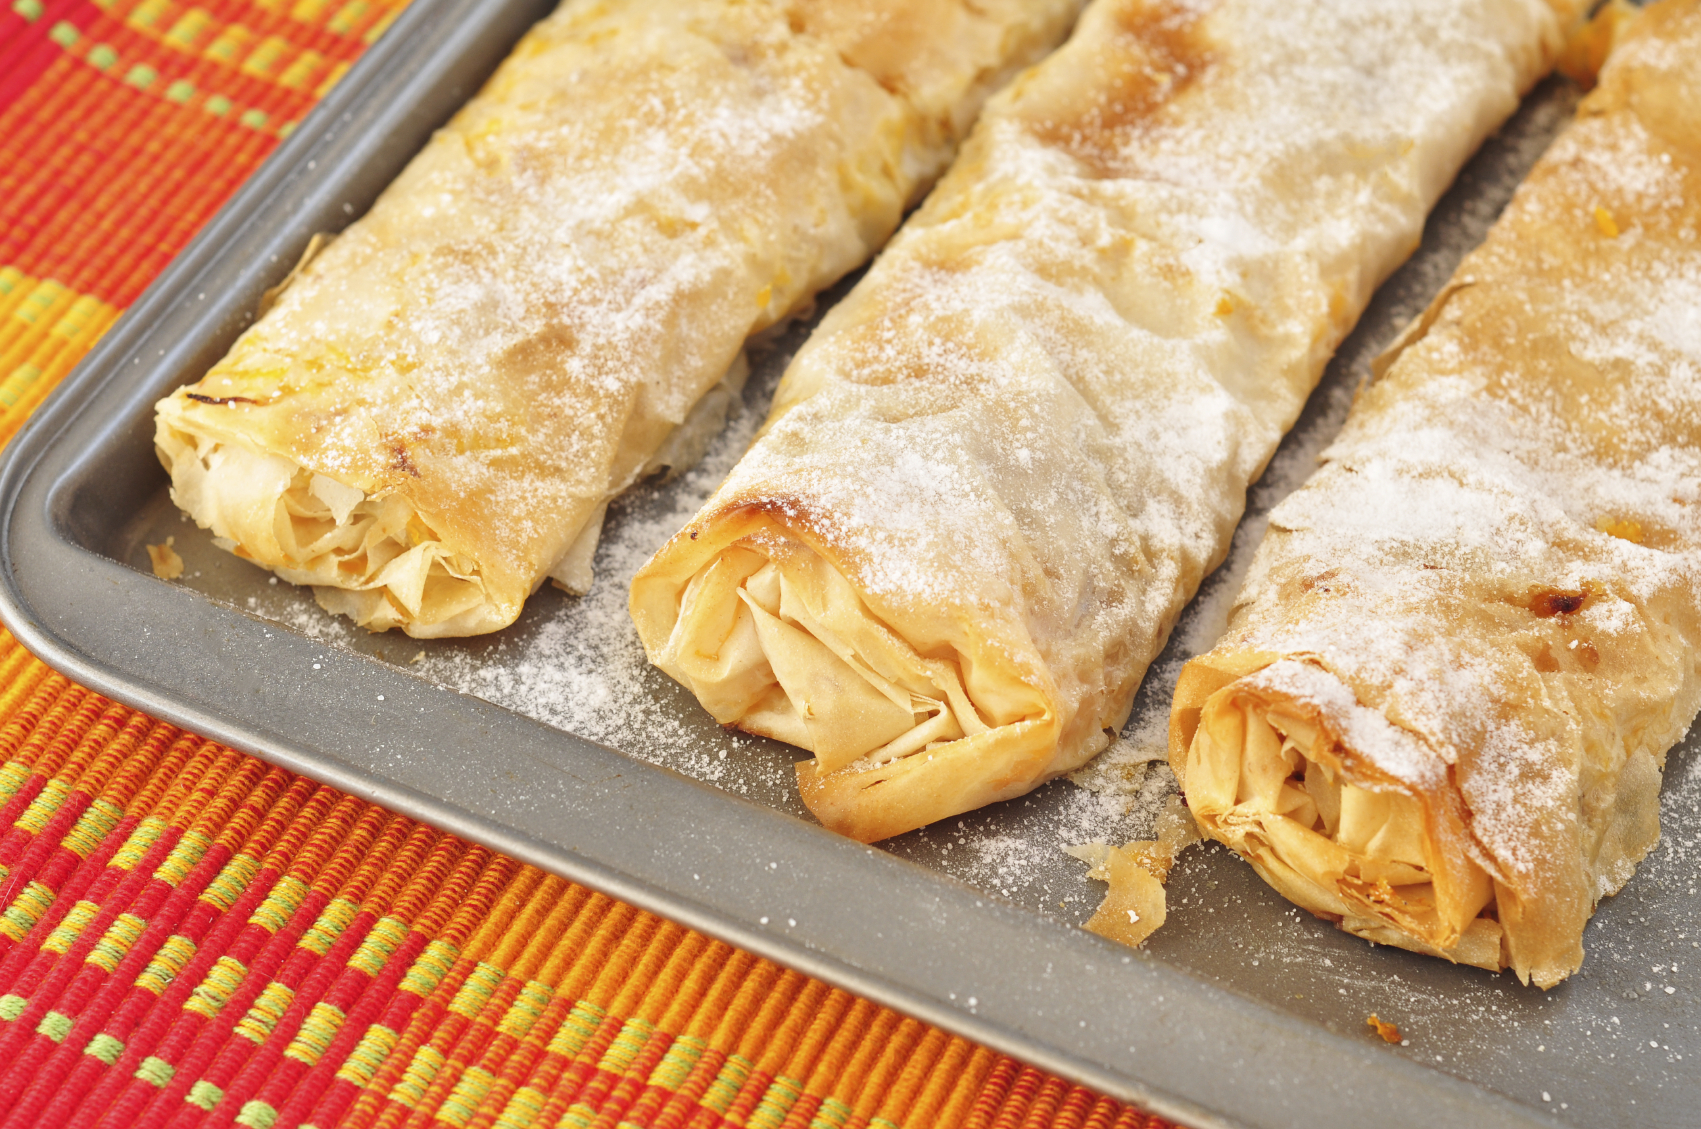 Recipe: Filo cigars with ricotta